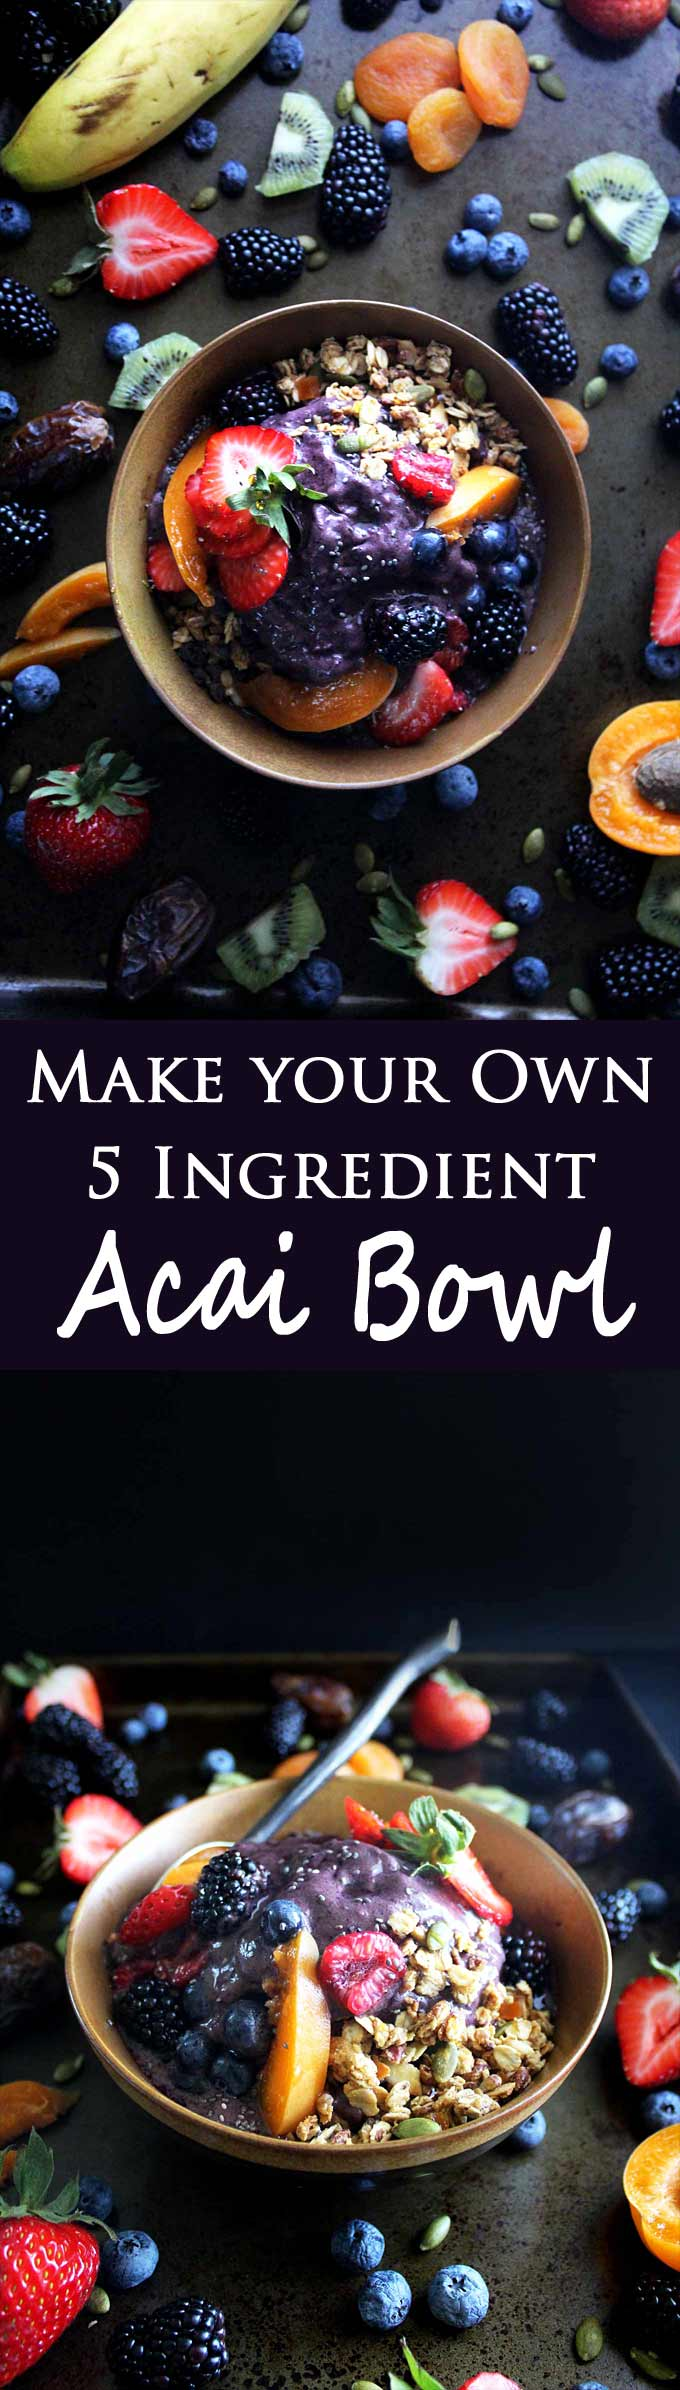 Make your own healthy acai bowl with your favorite fruits and this easy recipe!